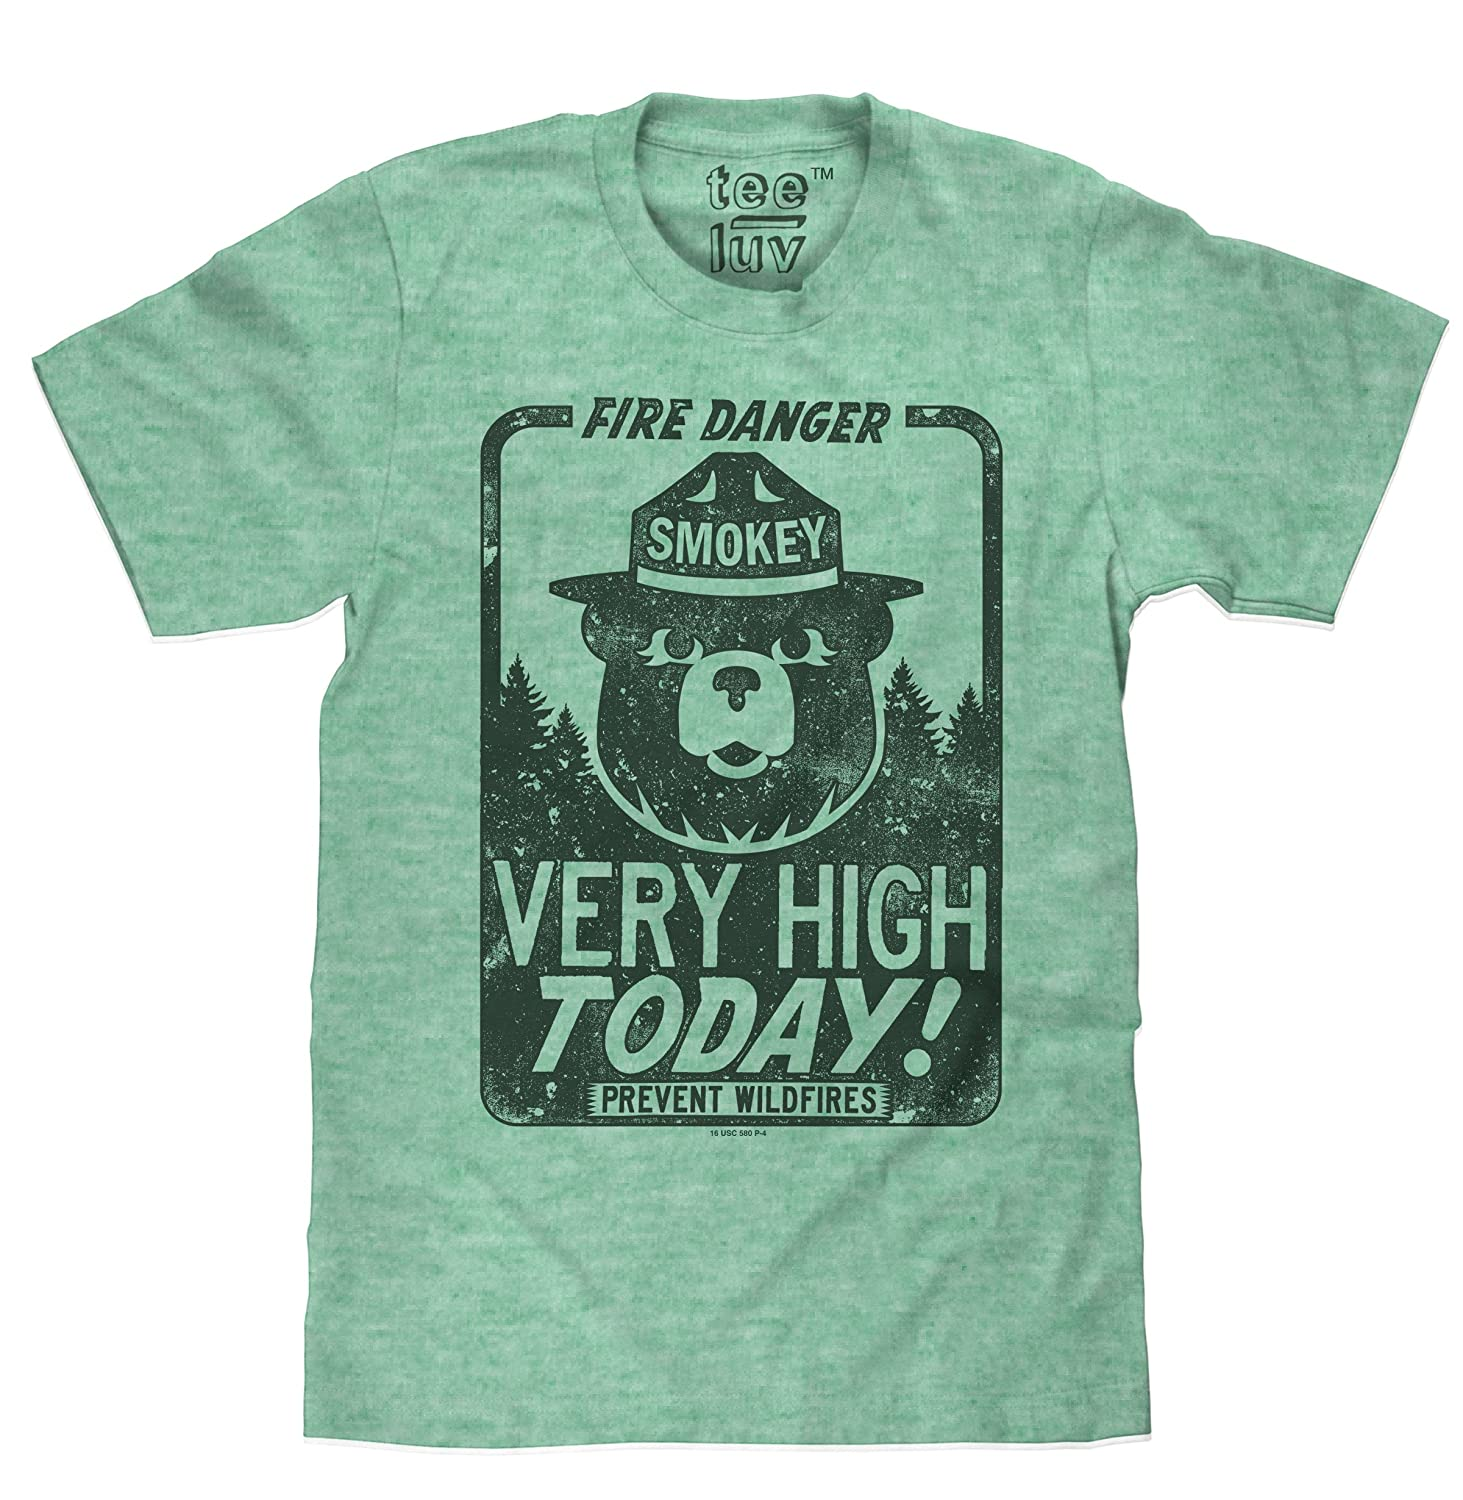 Smokey The Bear Fire Danger Very High Today | Big & Tall Soft Touch Tee Tee Luv